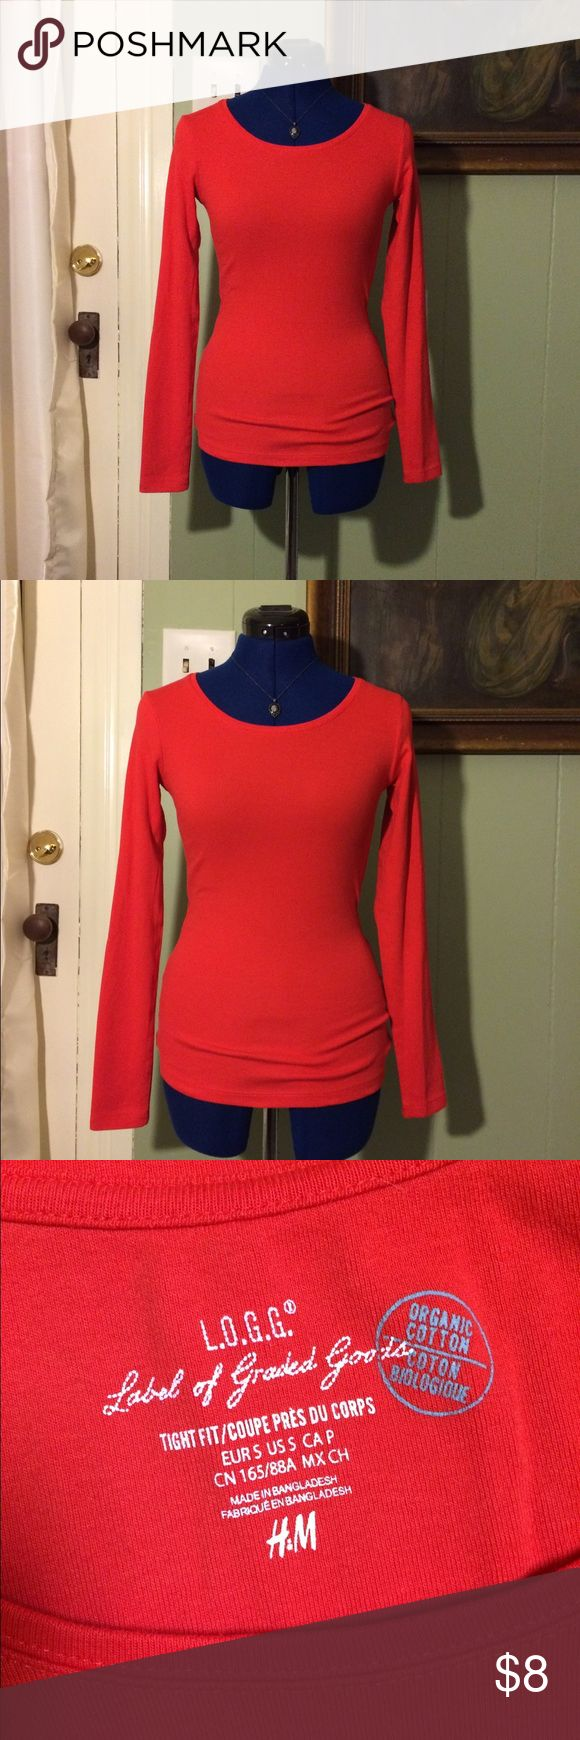 Bright red long sleeve top A bright off-red sleeve top. Very comfortable and stretchy. Has never been worn out, only tried on. It's just not my color! H&M brand, LOGG organic. Size small and true to size. H&M Tops Tees - Long Sleeve